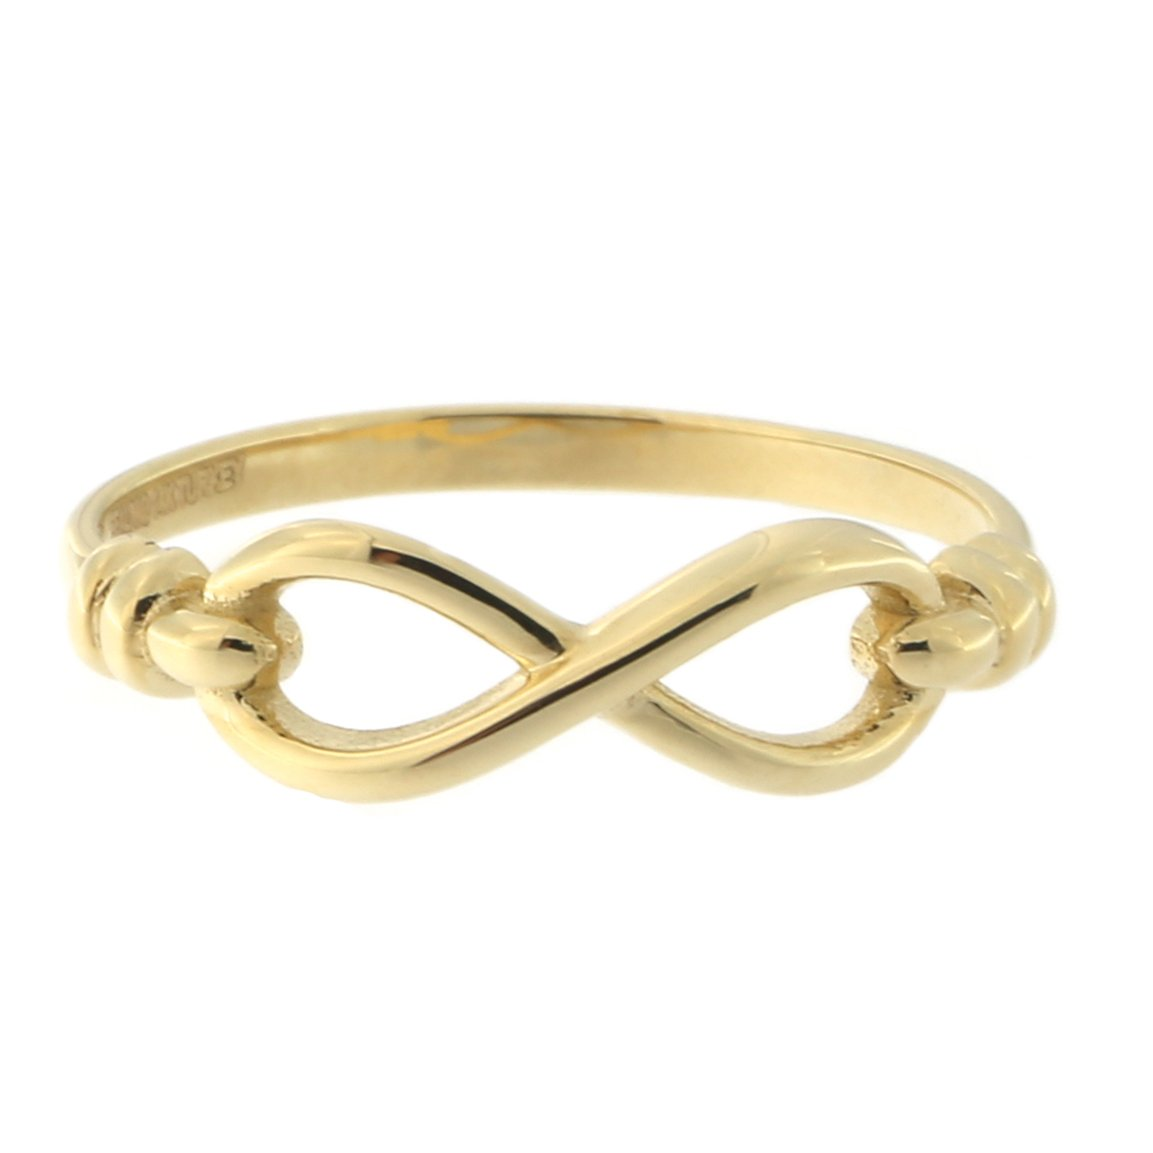 14k Yellow Gold Hooked Infinity Ring, size 9